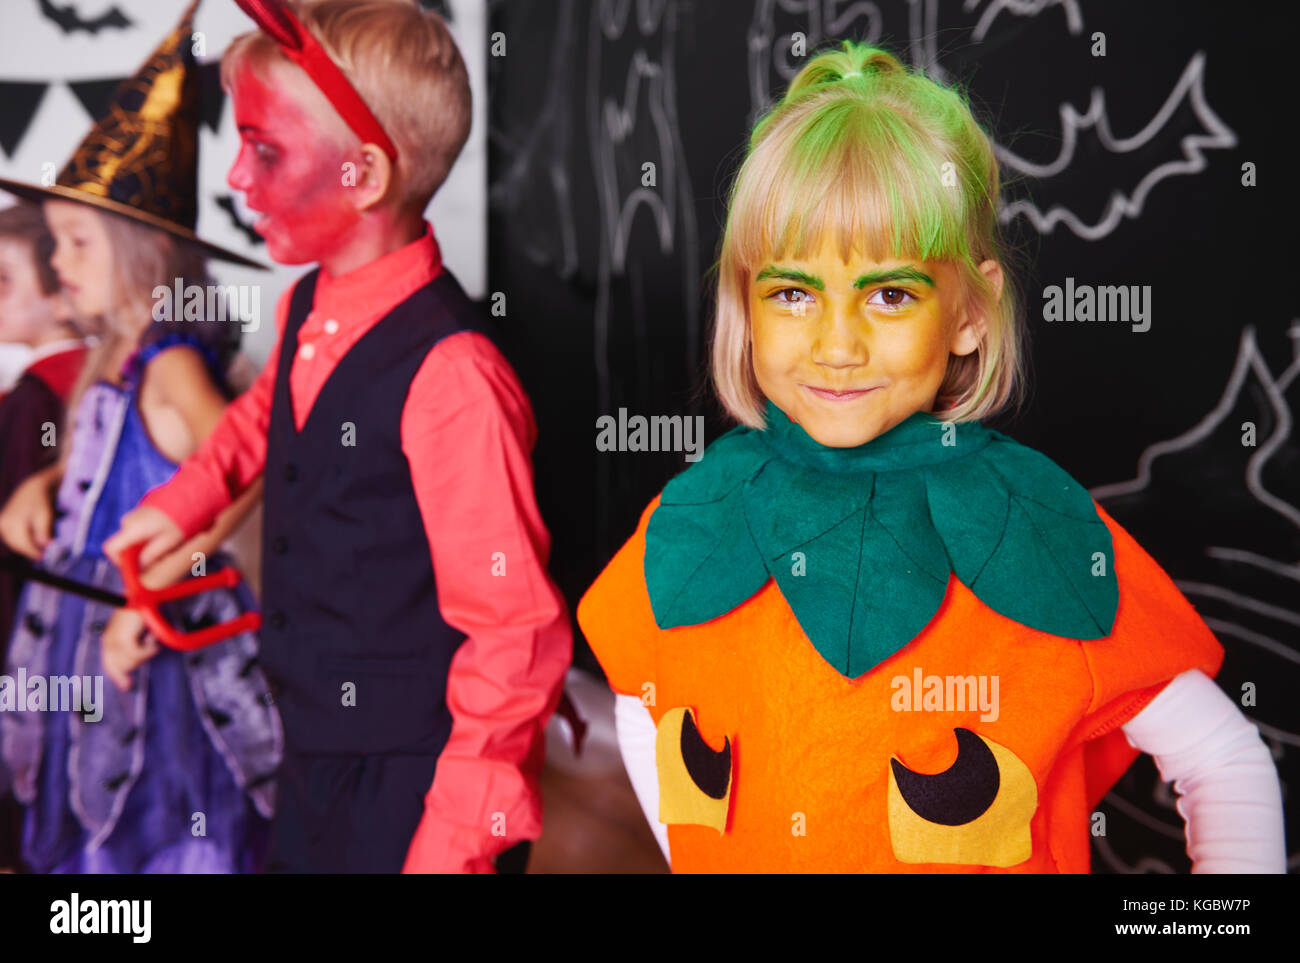 Cute girl in pumpkin costume celebrating halloween with friends  sc 1 st  Alamy & Cute girl in pumpkin costume celebrating halloween with friends ...